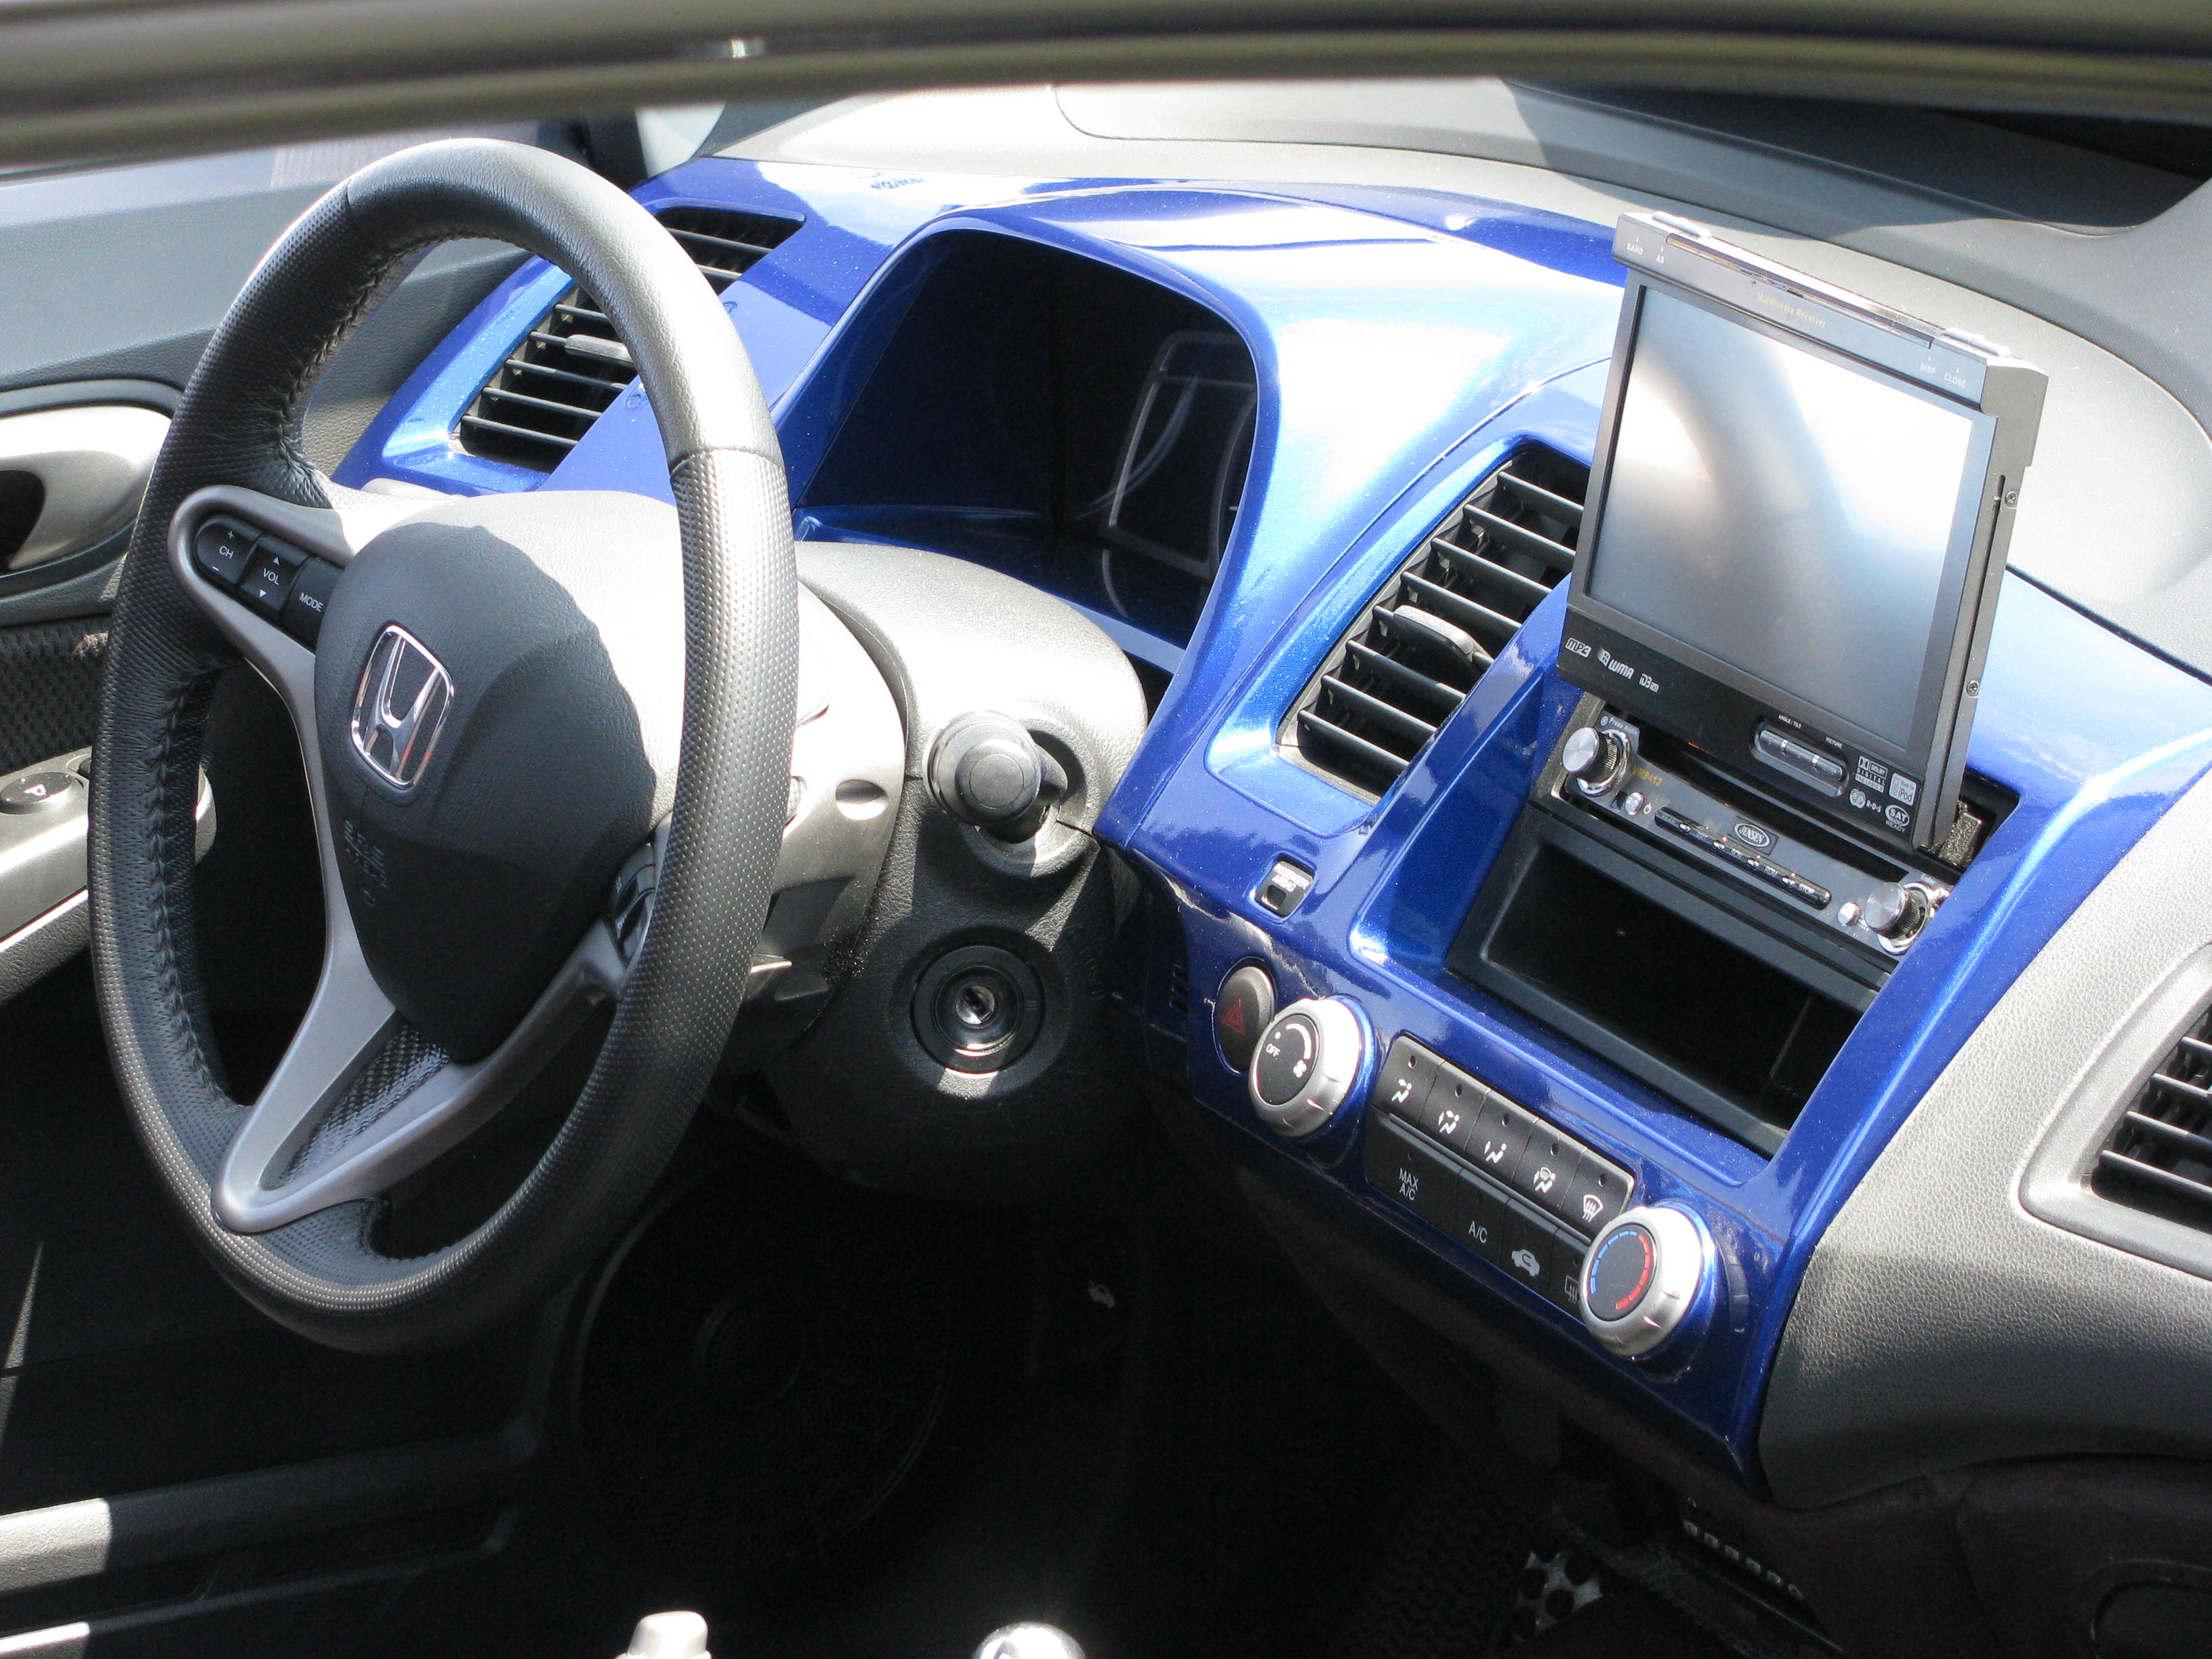 2004 honda civic si interior